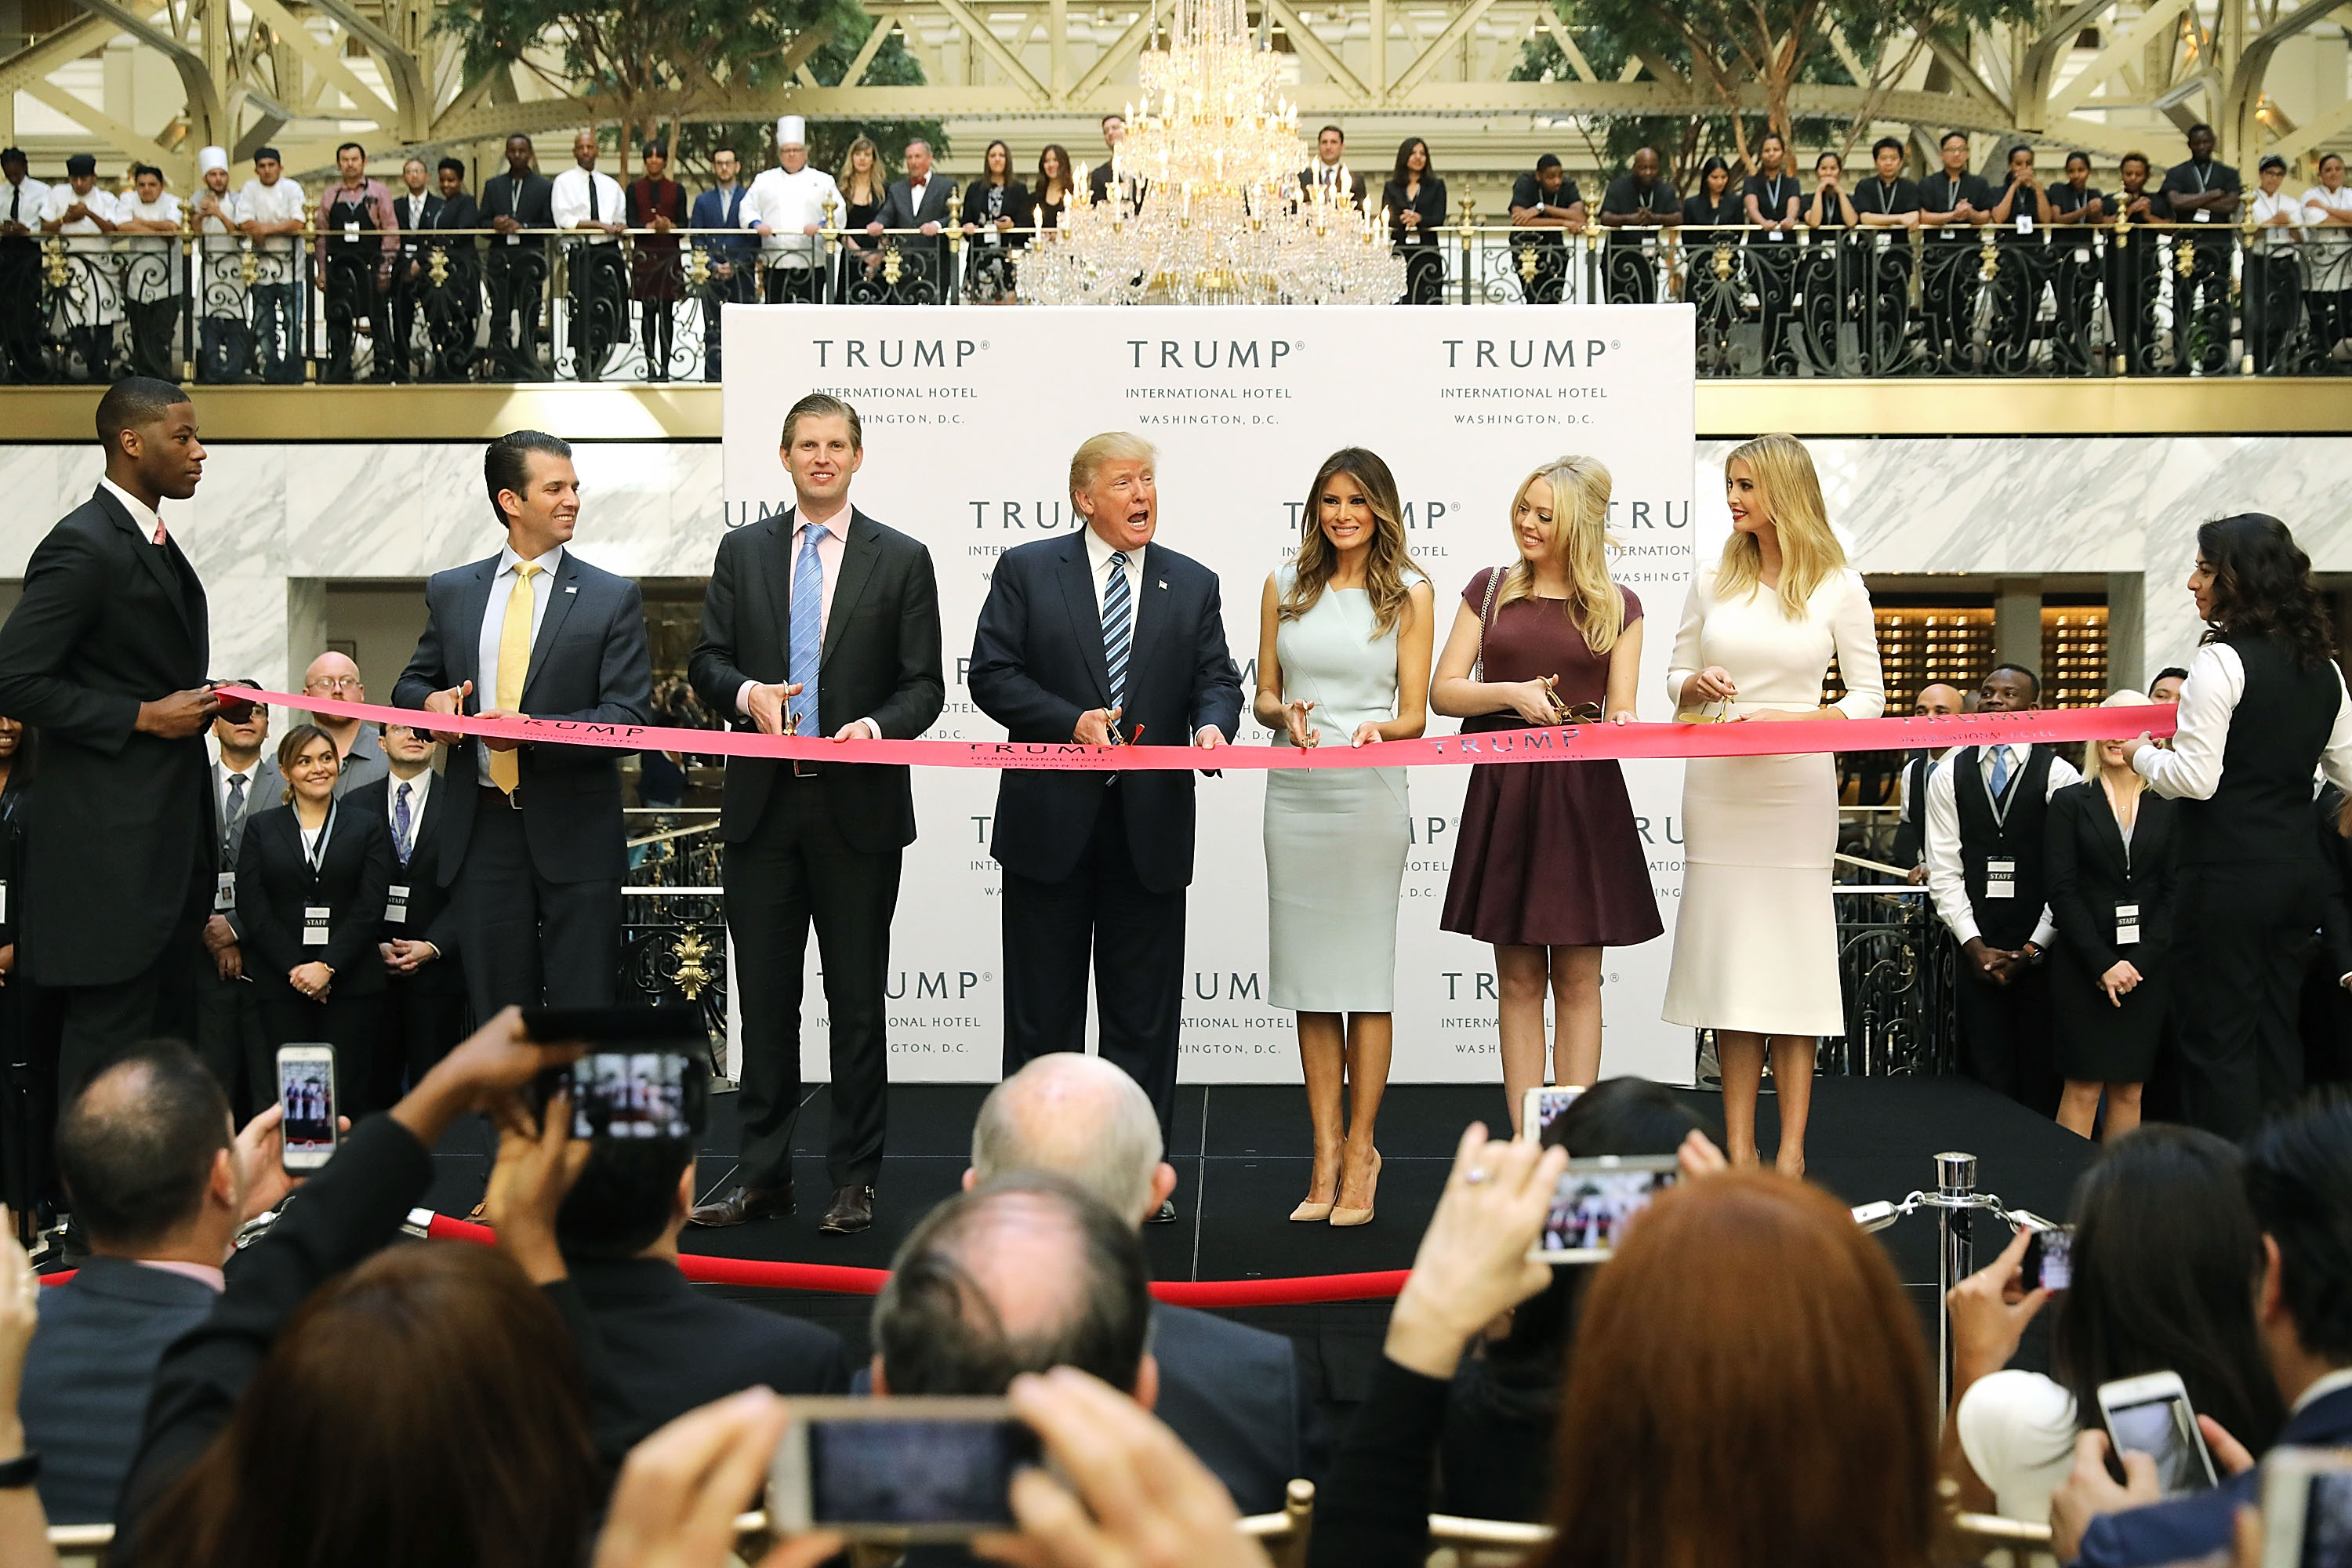 Republican presidential nominee Donald Trump (C) and his family (L-R) son Donald Trump Jr, son Eric Trummp, wife Melania Trump and daughters Tiffany Trump and Ivanka Trump cut the ribbon at the new Trump International Hotel October 26, 2016 in Washington, DC. (Photo by Chip Somodevilla/Getty Images)